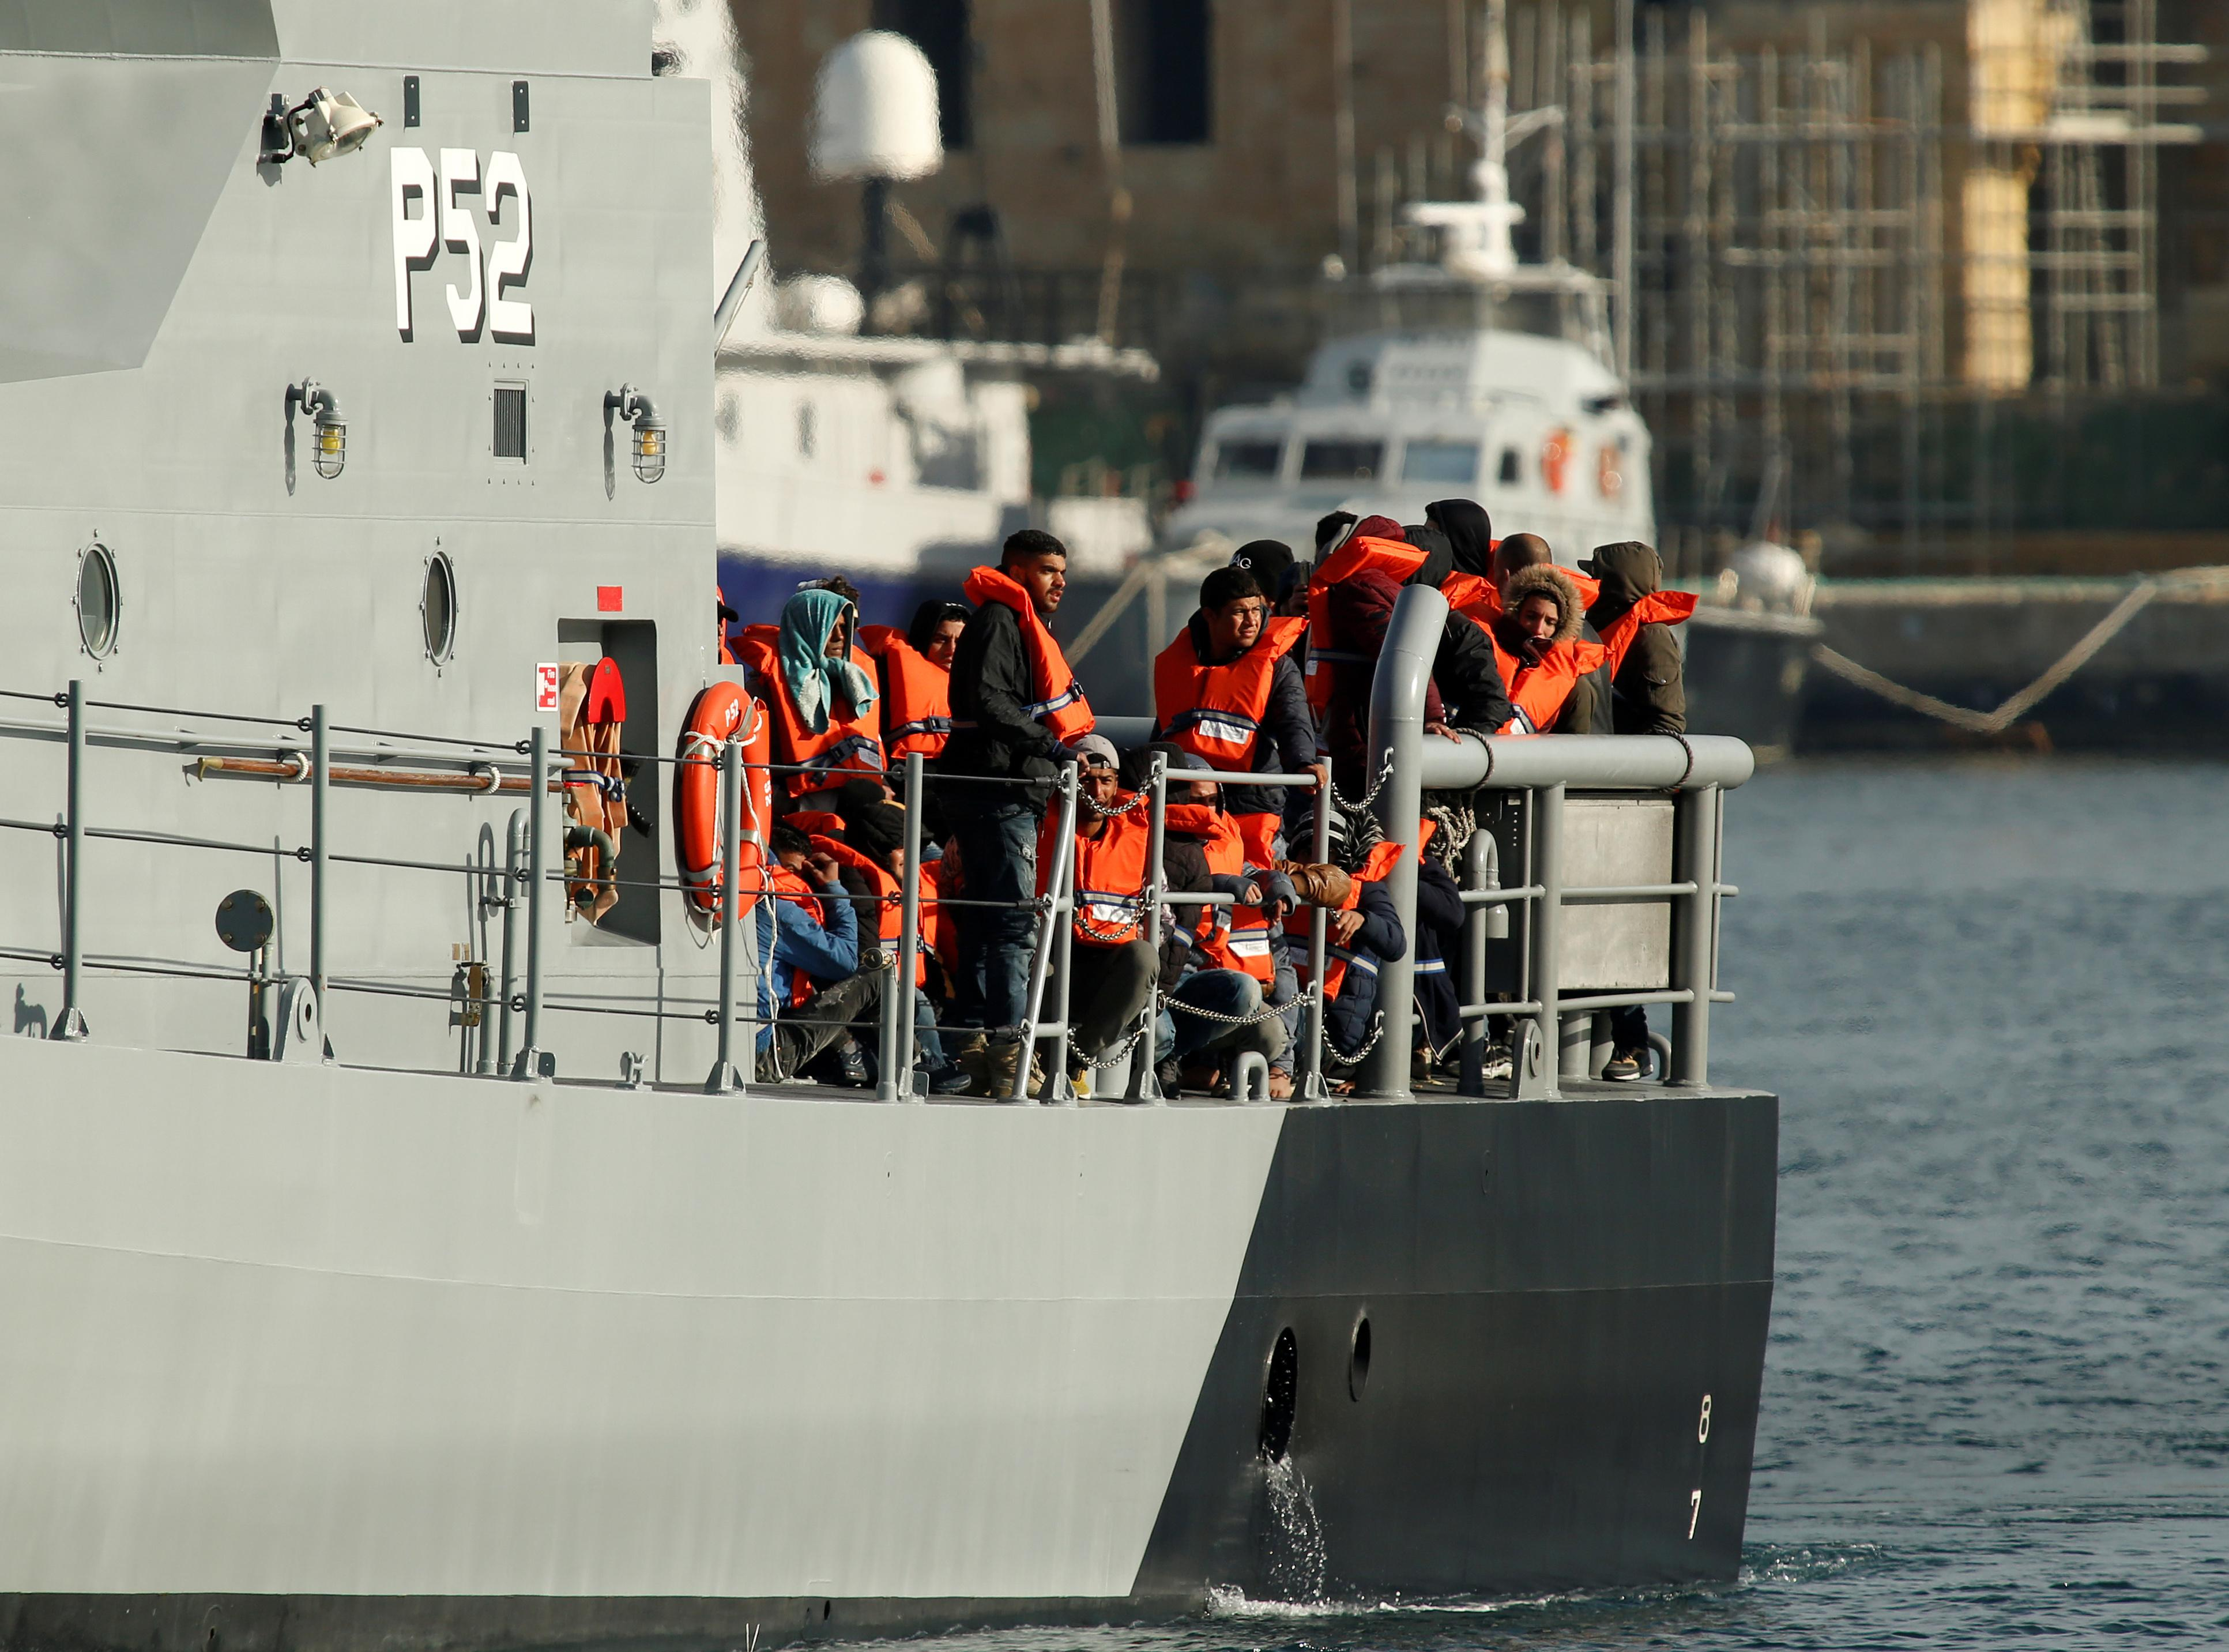 More than 80 migrants rescued off Italy's Lampedusa